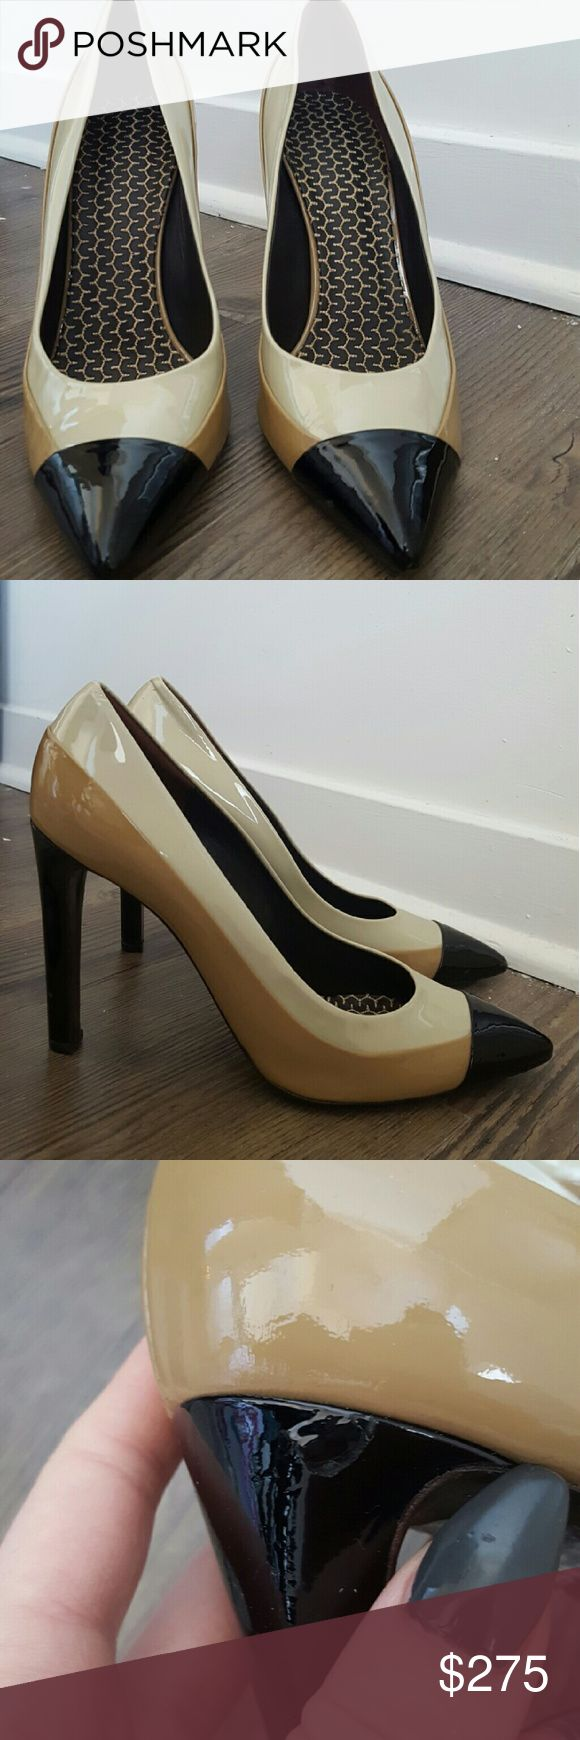 """Belstaff """"Chester"""" Pump Size 41 (fits 9.5) Belstaff """"Chester"""" Tri-Color Patent Pump in sand-beige-black  Some original stickers still in tact Slight scuffing on bottom of shoe and a small tear in right outside heel (see photo) Belstaff Shoes Heels"""